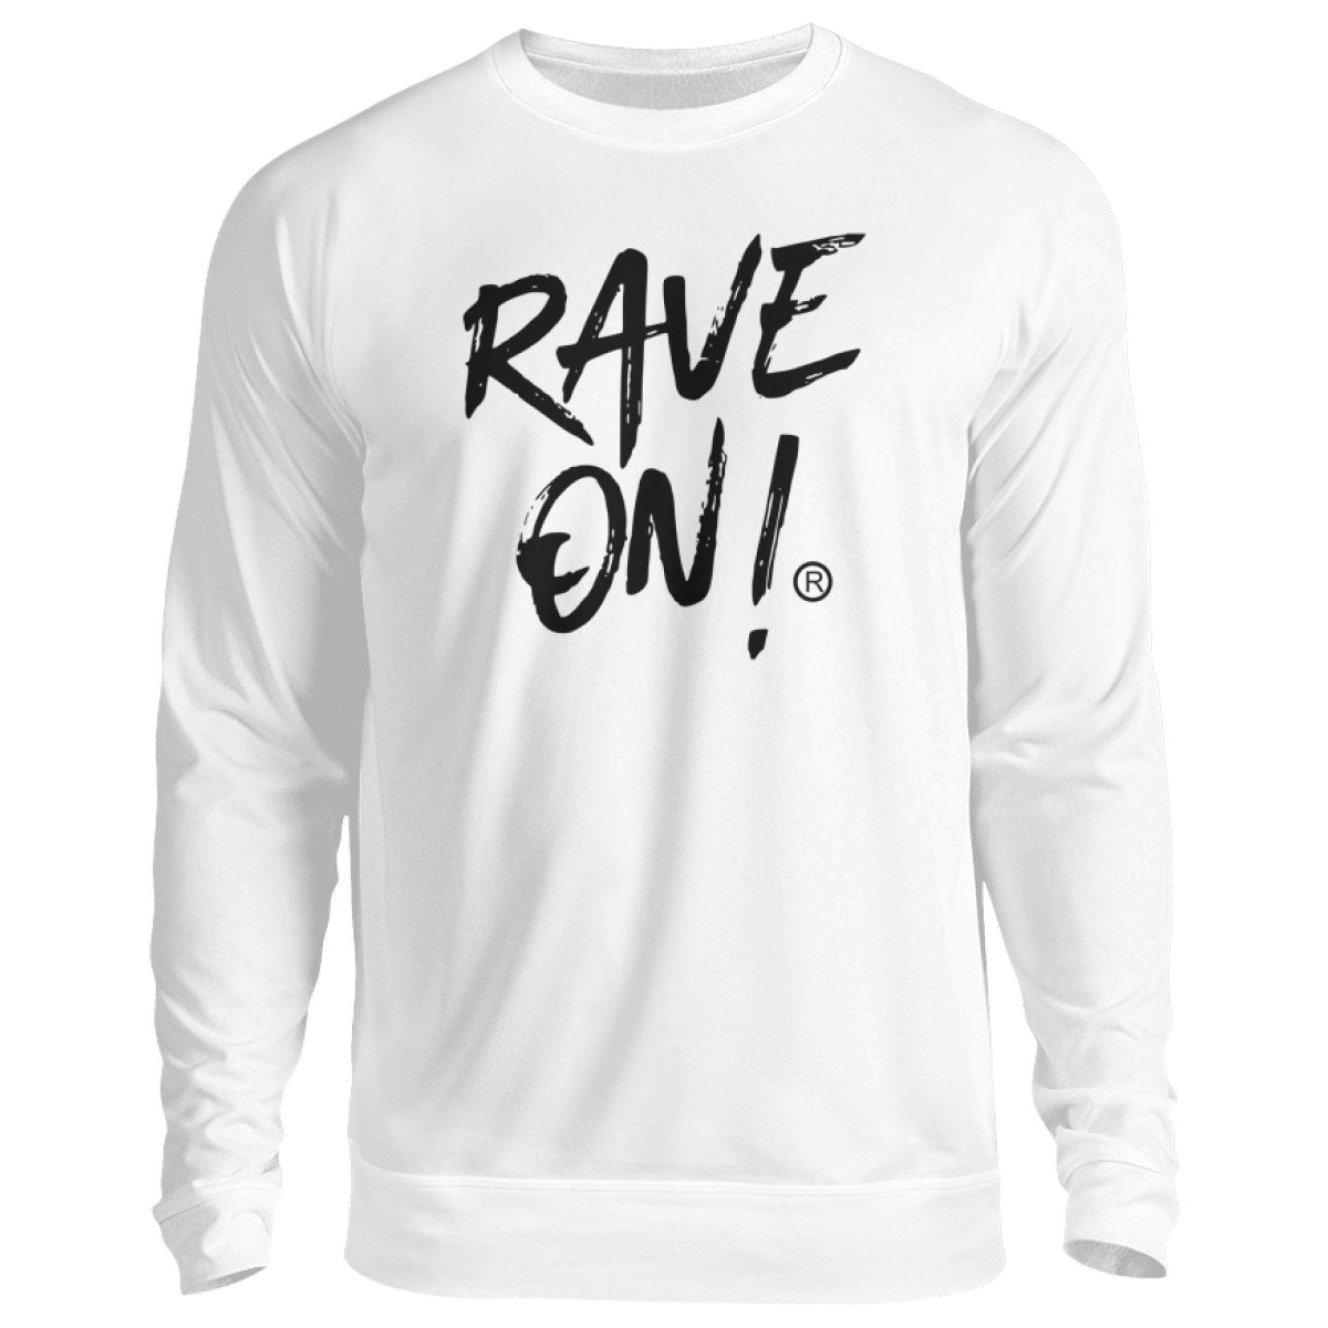 RAVE ON!® Light Collection - Unisex Pullover-Unisex Sweatshirt-Arktikweiß-S-Rave-On! I www.rave-on.shop I Deine Rave & Techno Szene Shop I Design - RAVE ON!® Light Collection - Sexy Festival Streetwear , Clubwear & Raver Style